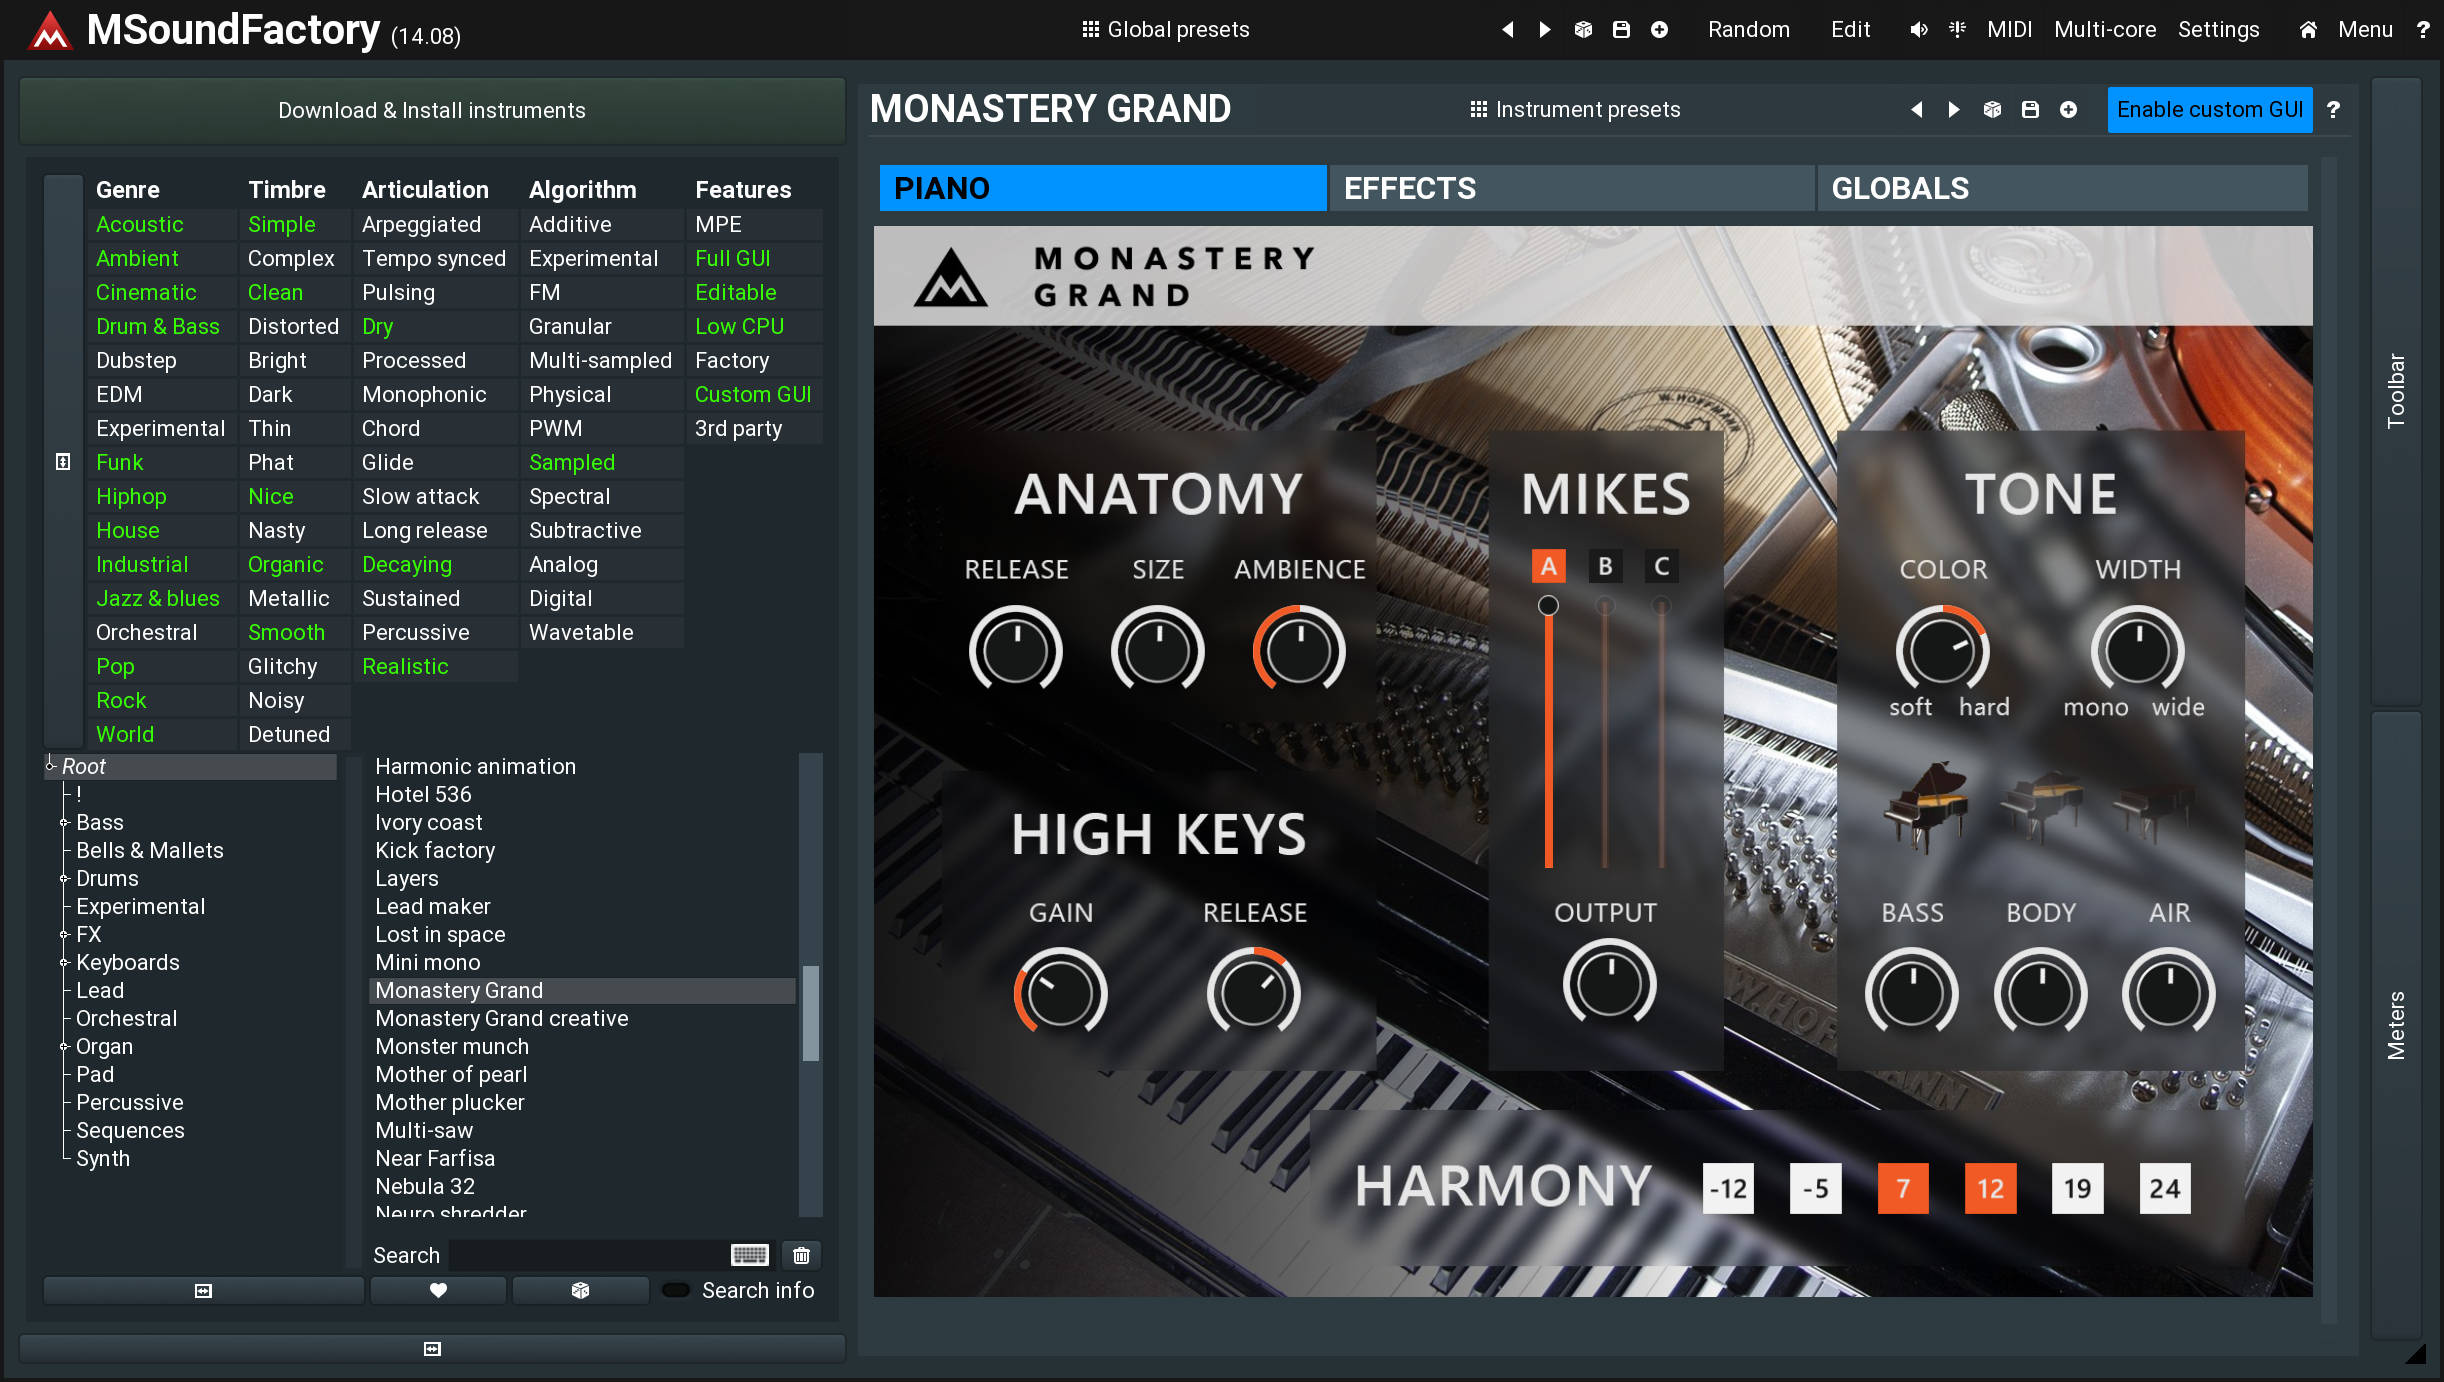 Free-for-life updates including new instruments